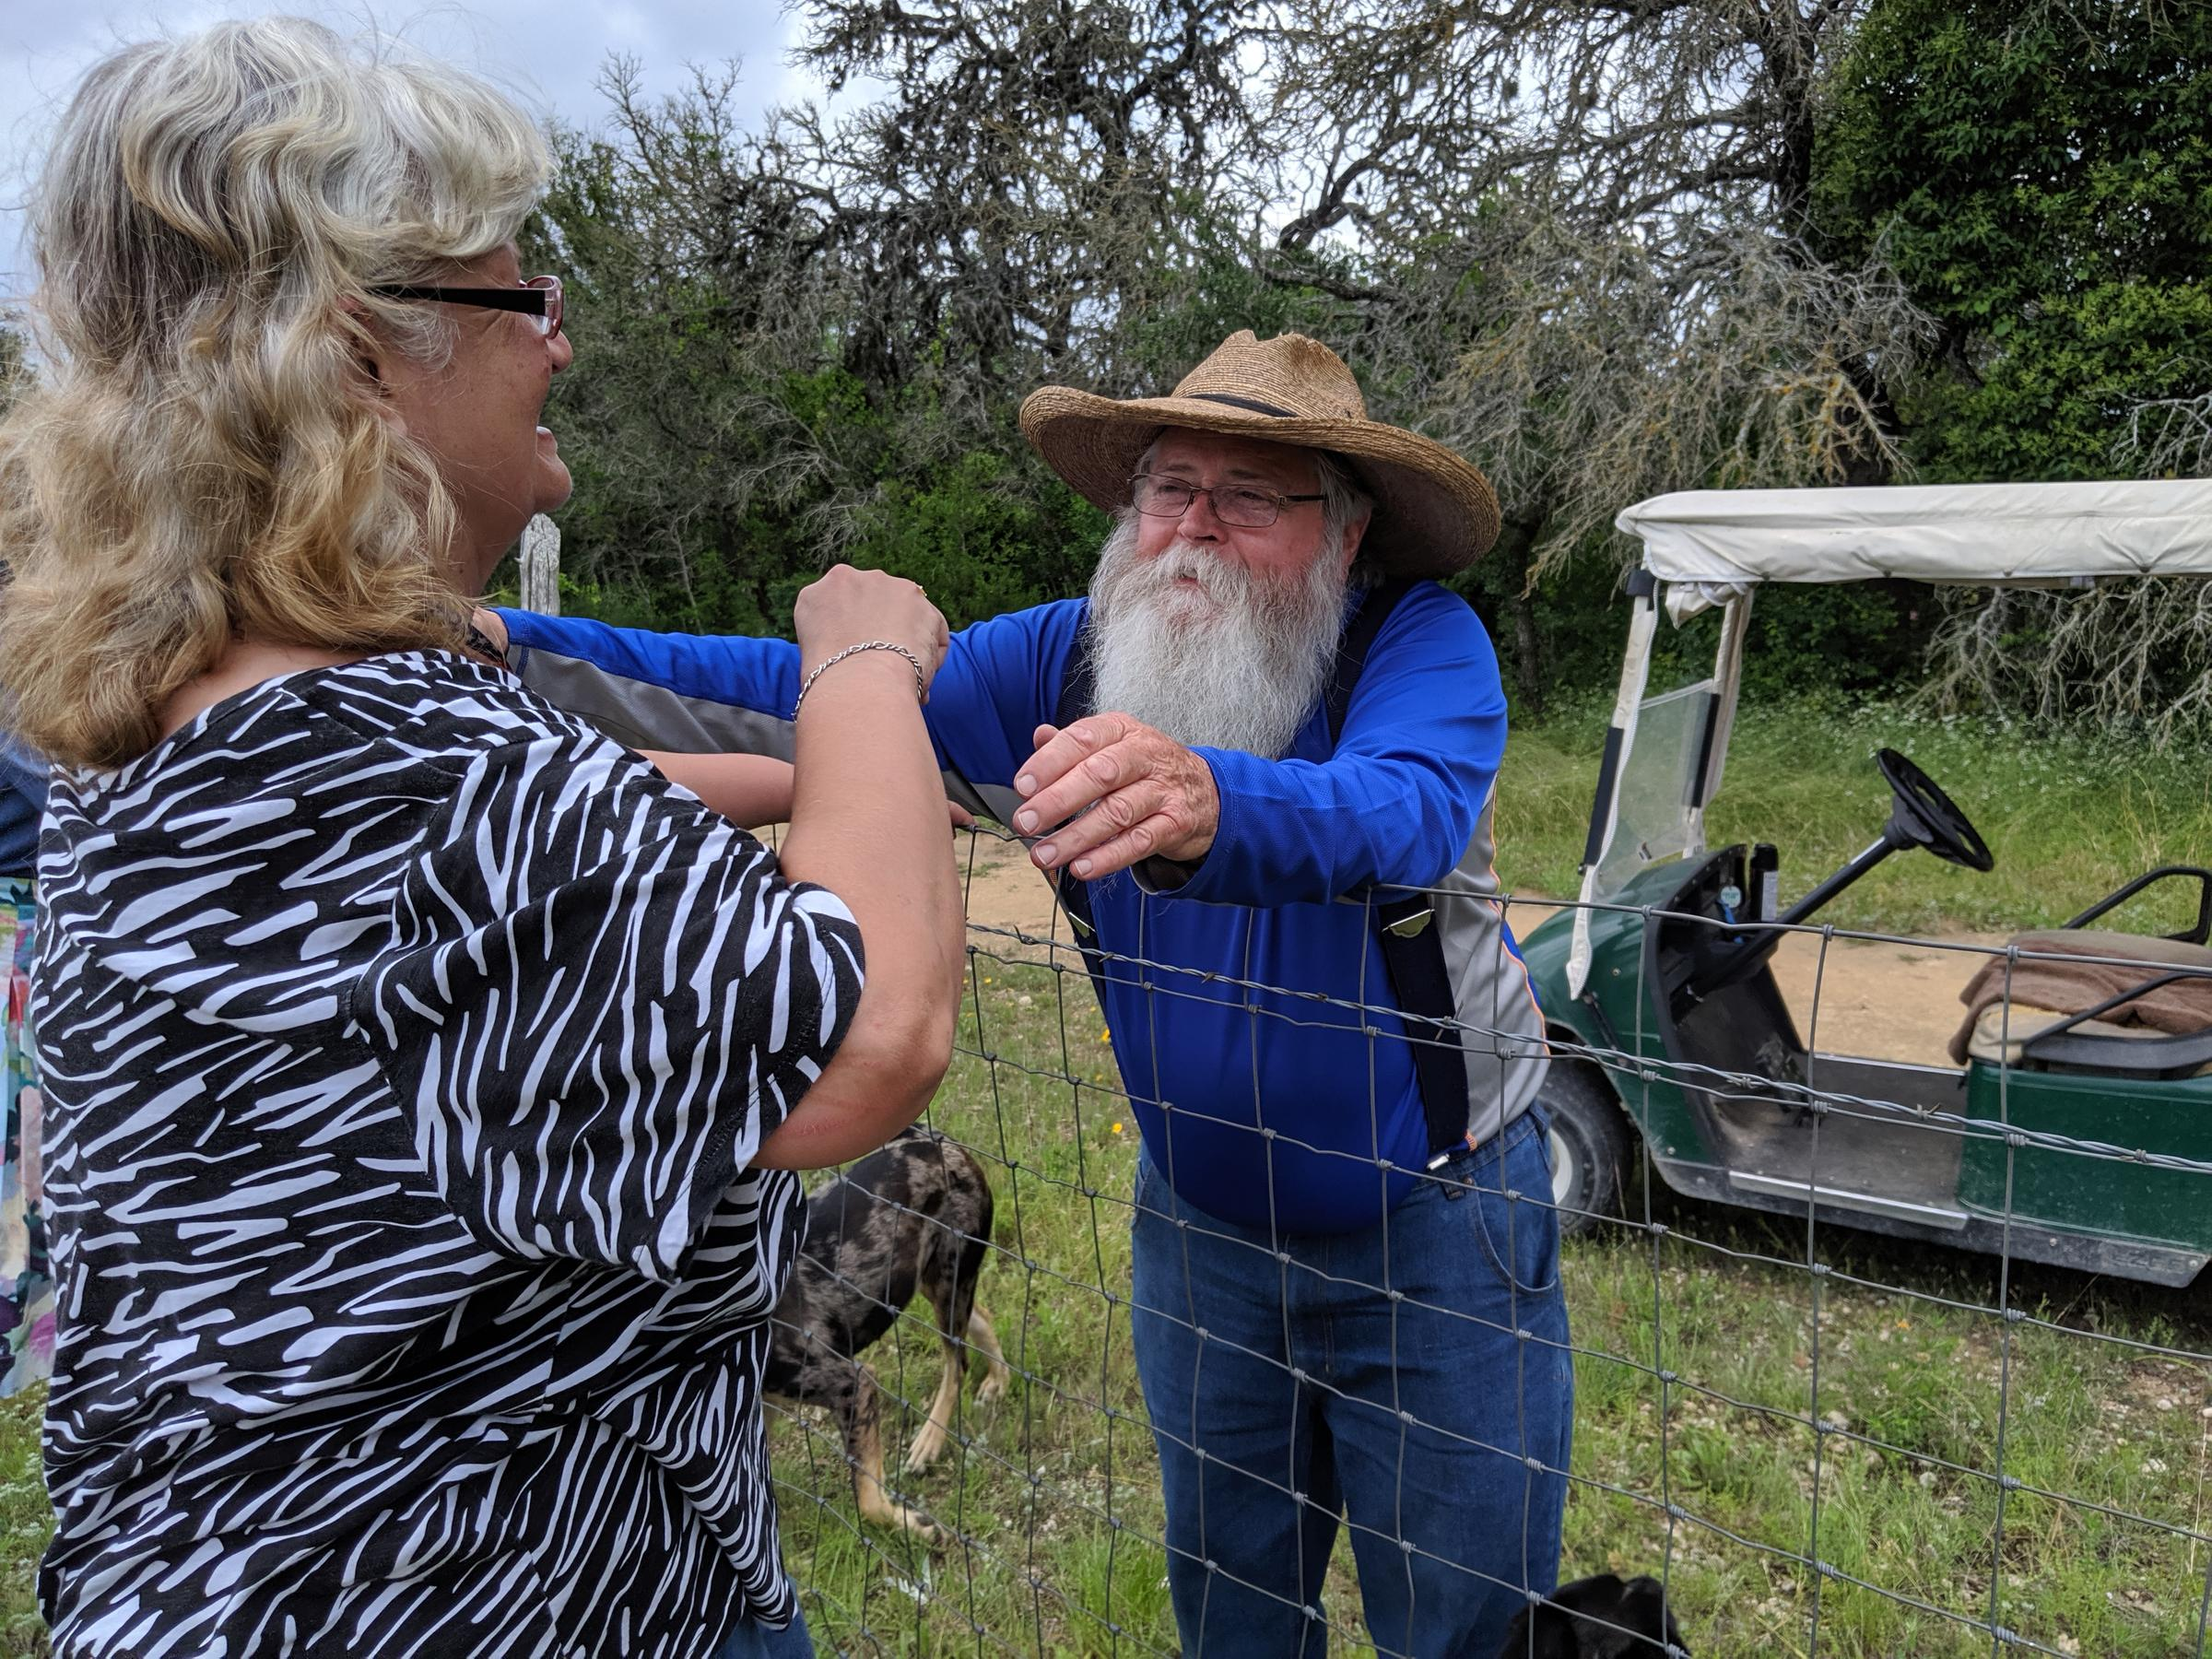 man with big white beard and giant hat leans to hug a woman over a wire fence